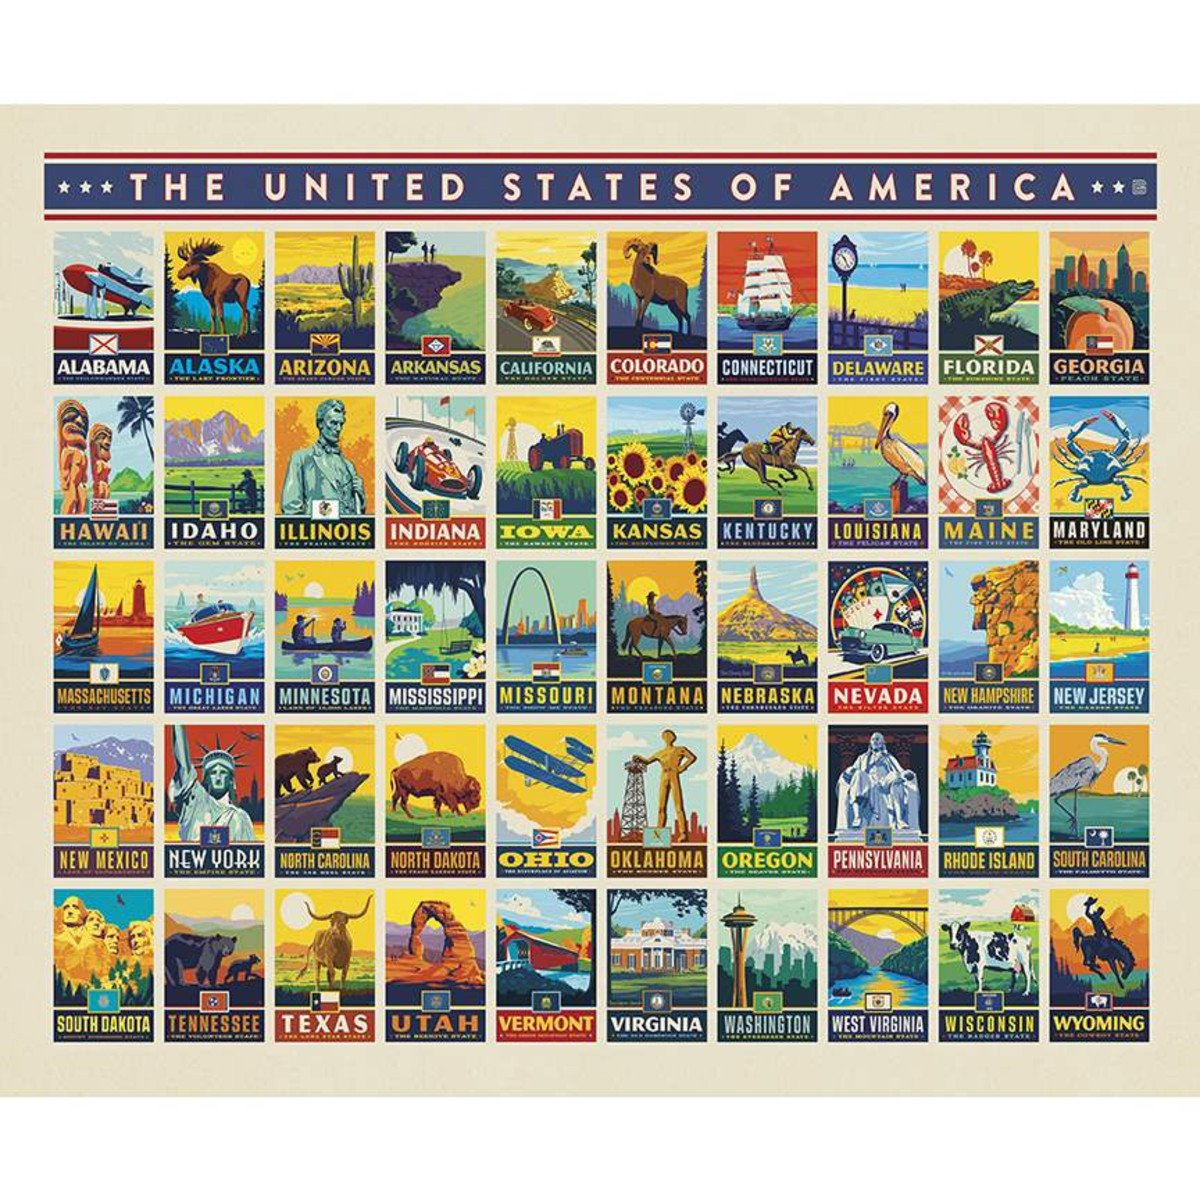 Destinations State Pride Poster Fabric Panel